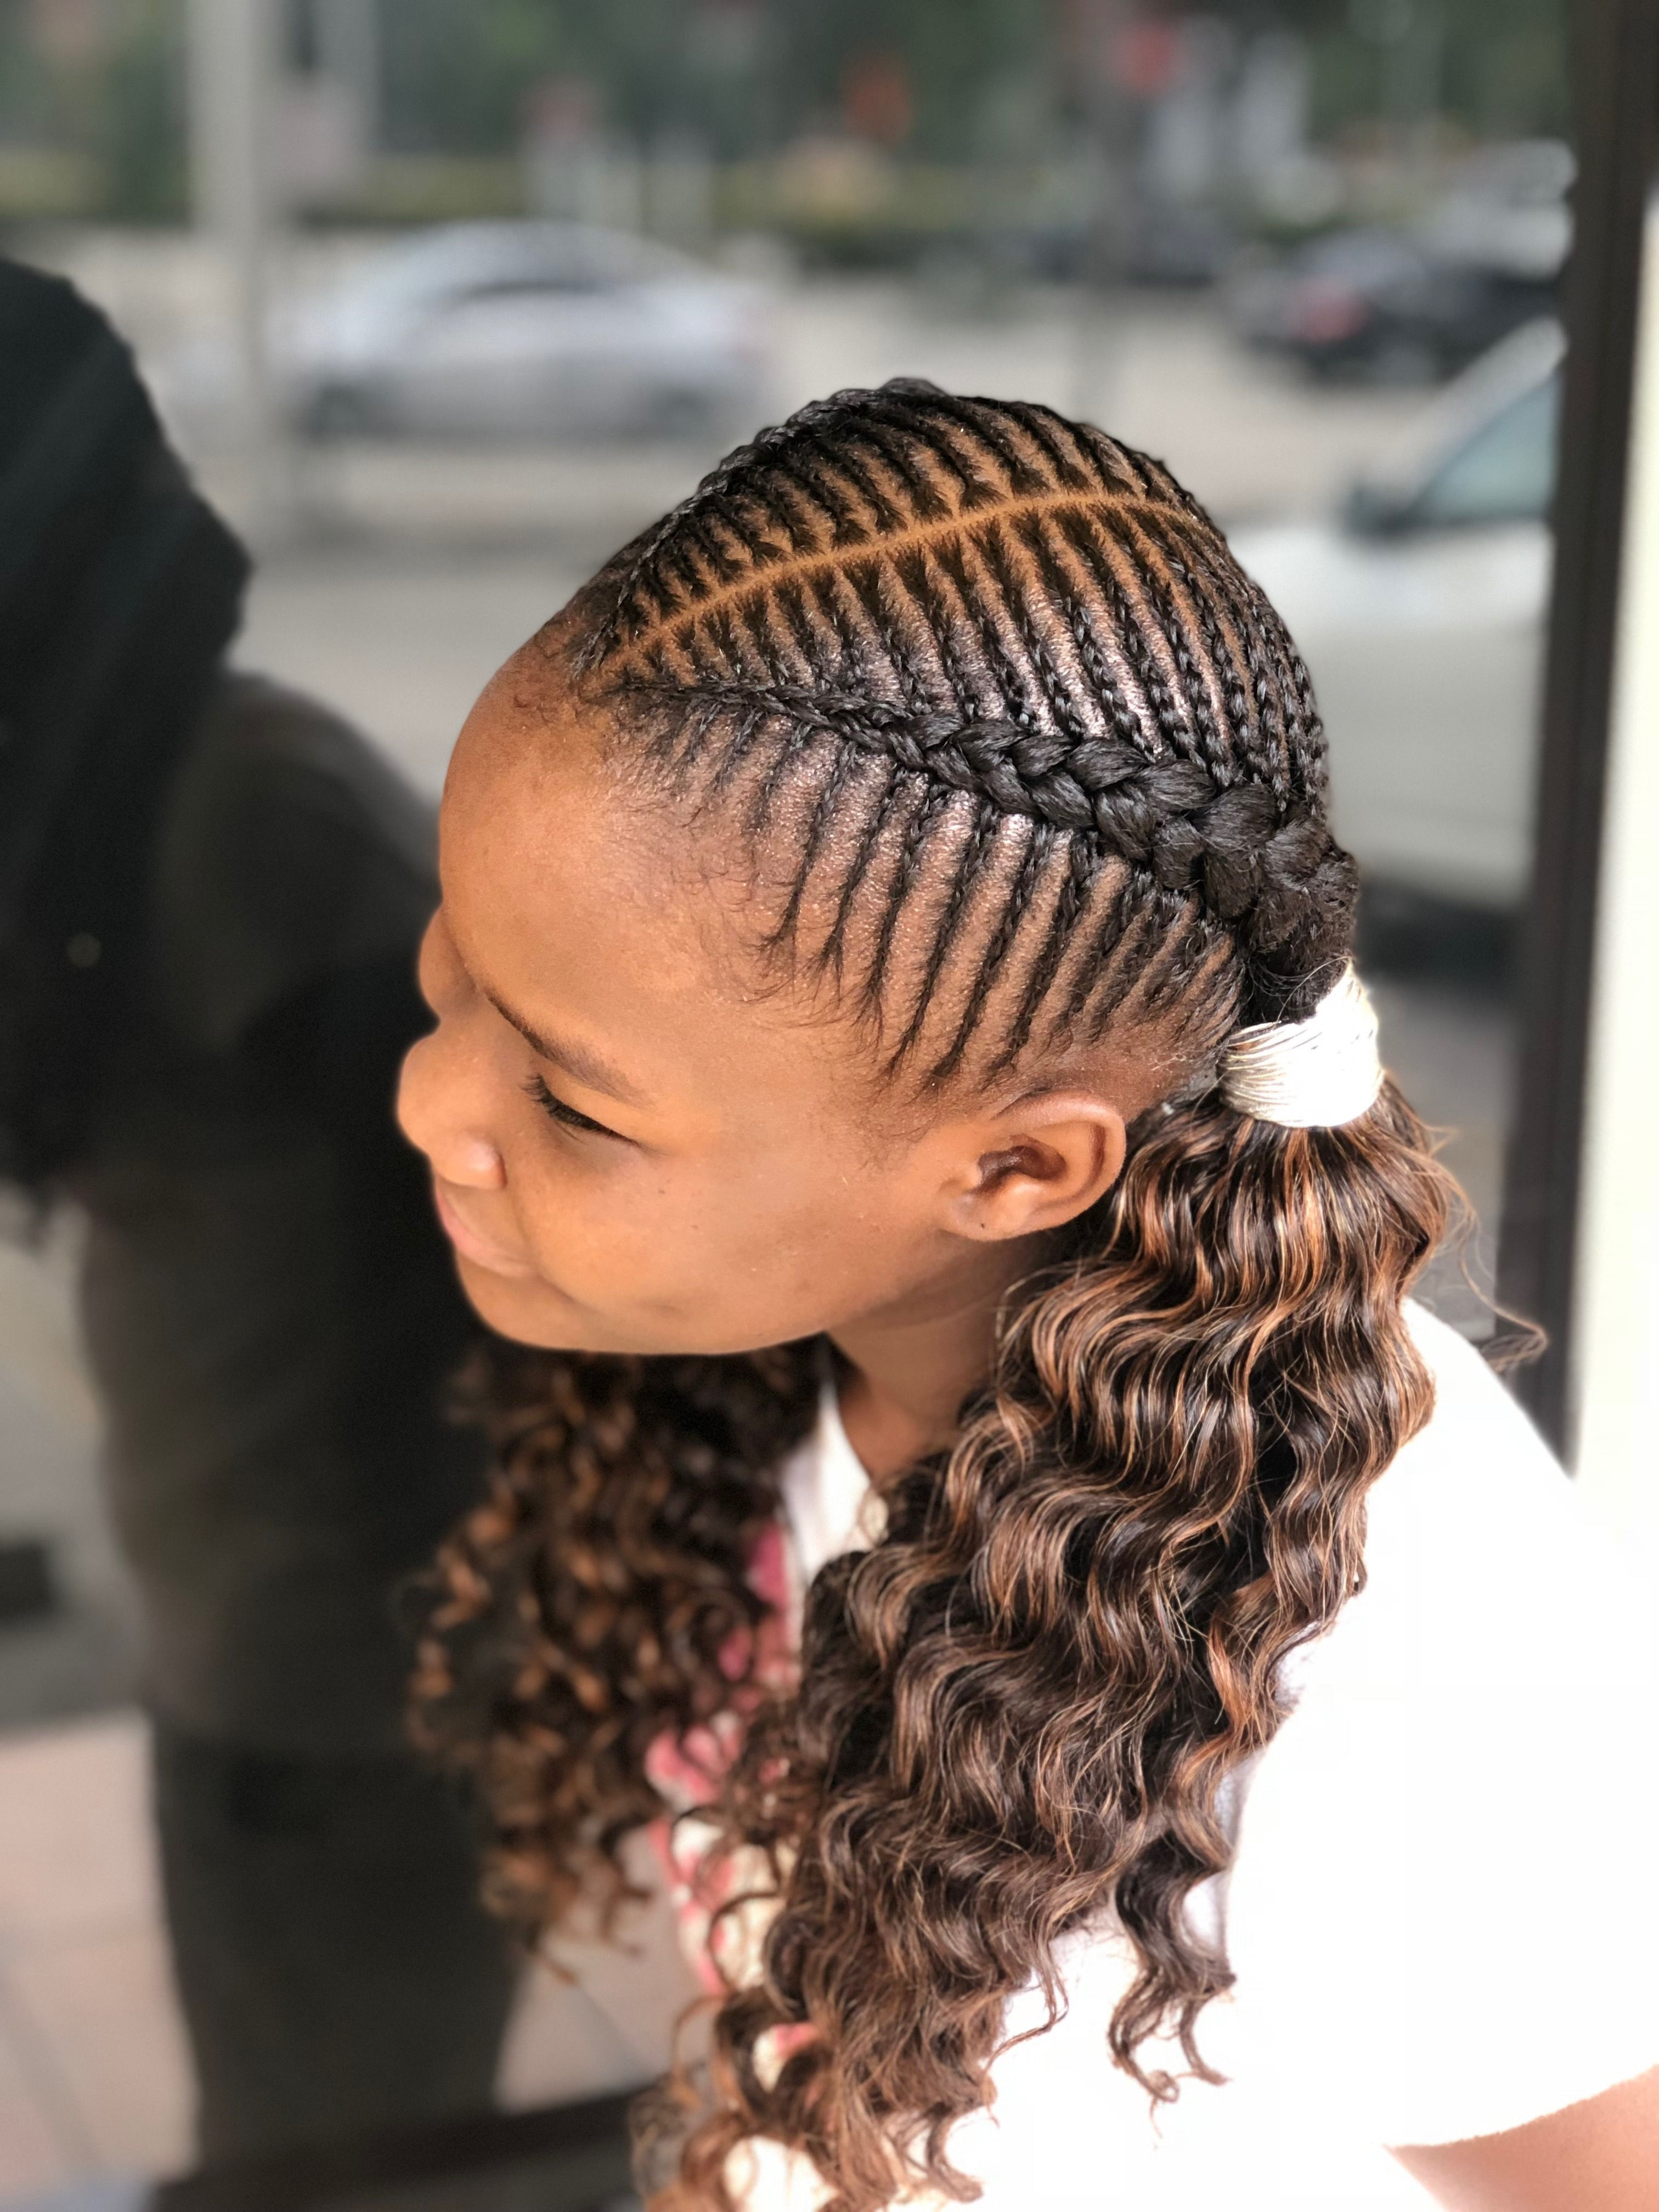 Braided Ponytail For Most Up To Date Stylish Braids Ponytail Hairstyles (View 7 of 20)